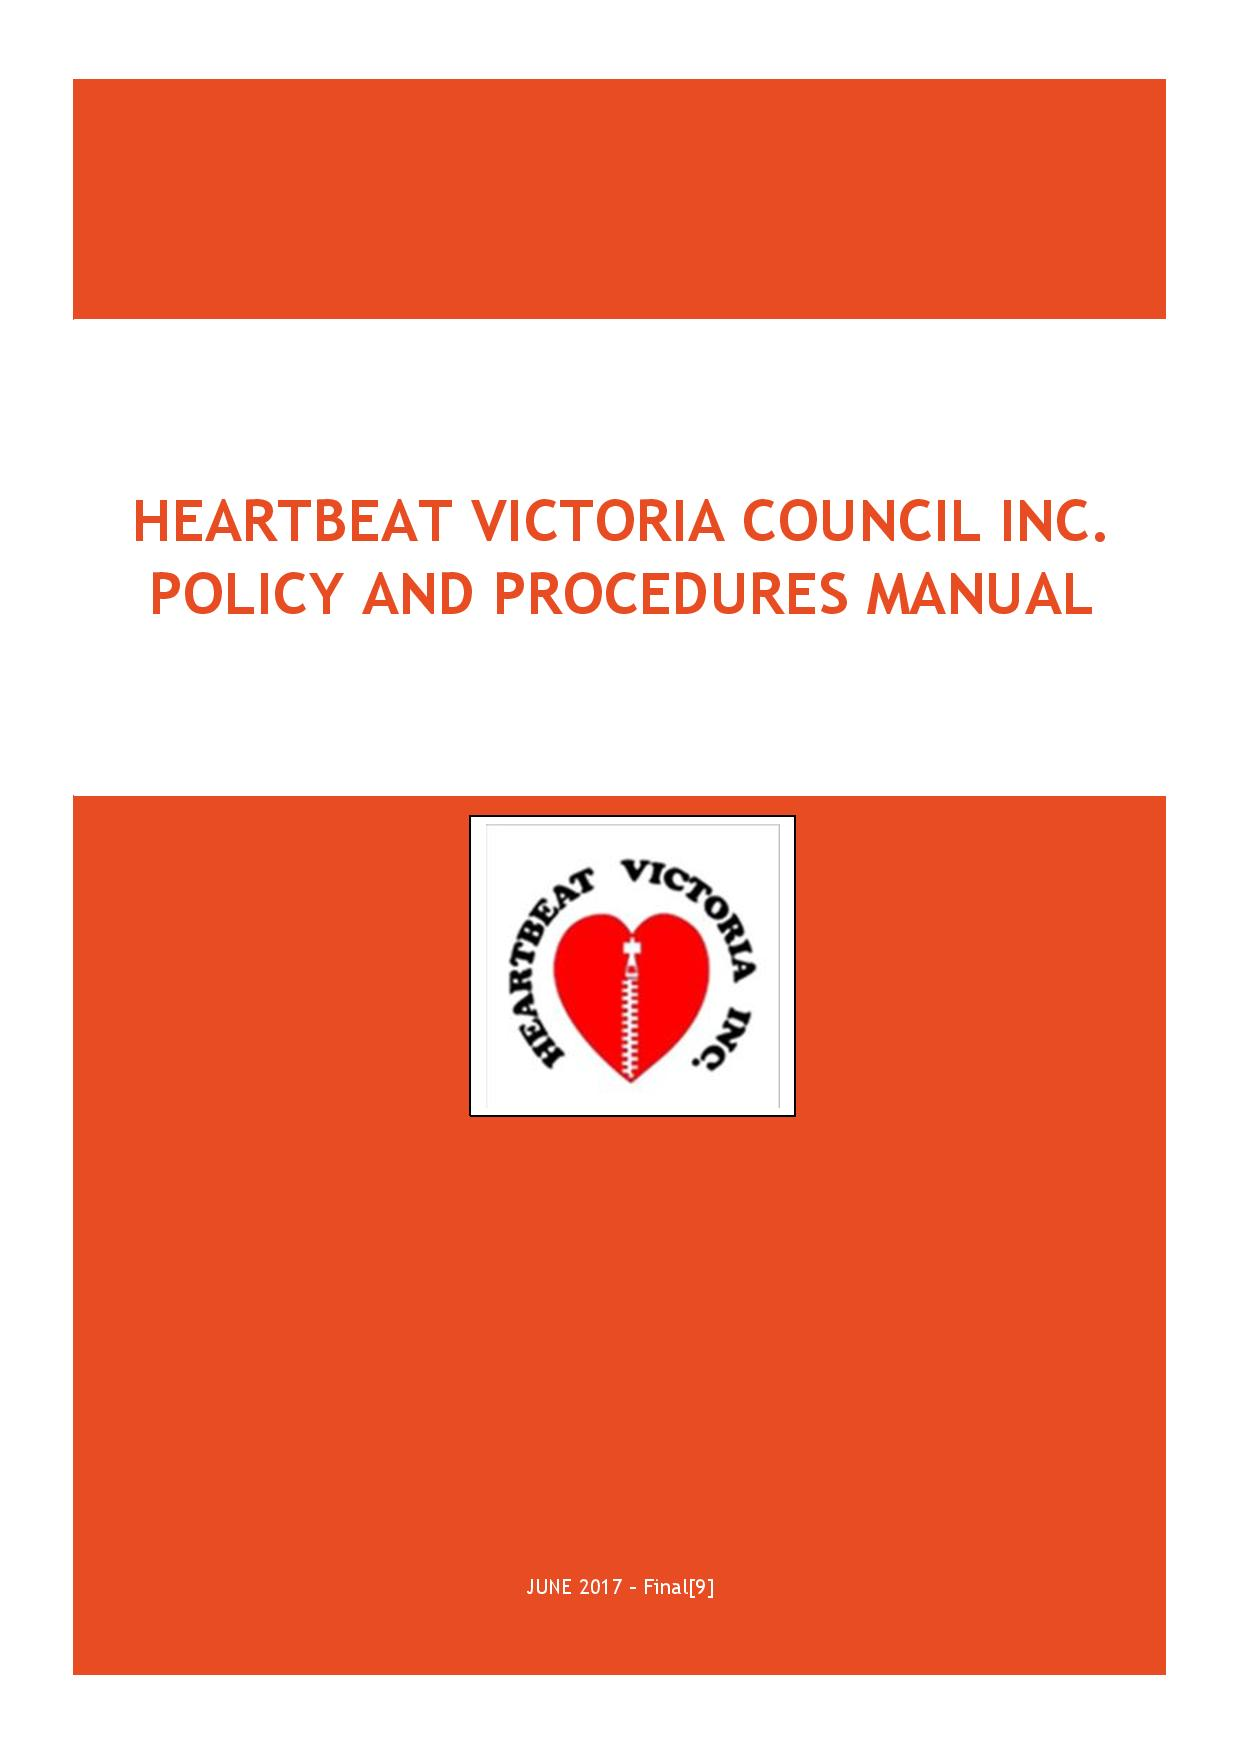 Heartbeat Victoria Policy and Procedures Manual